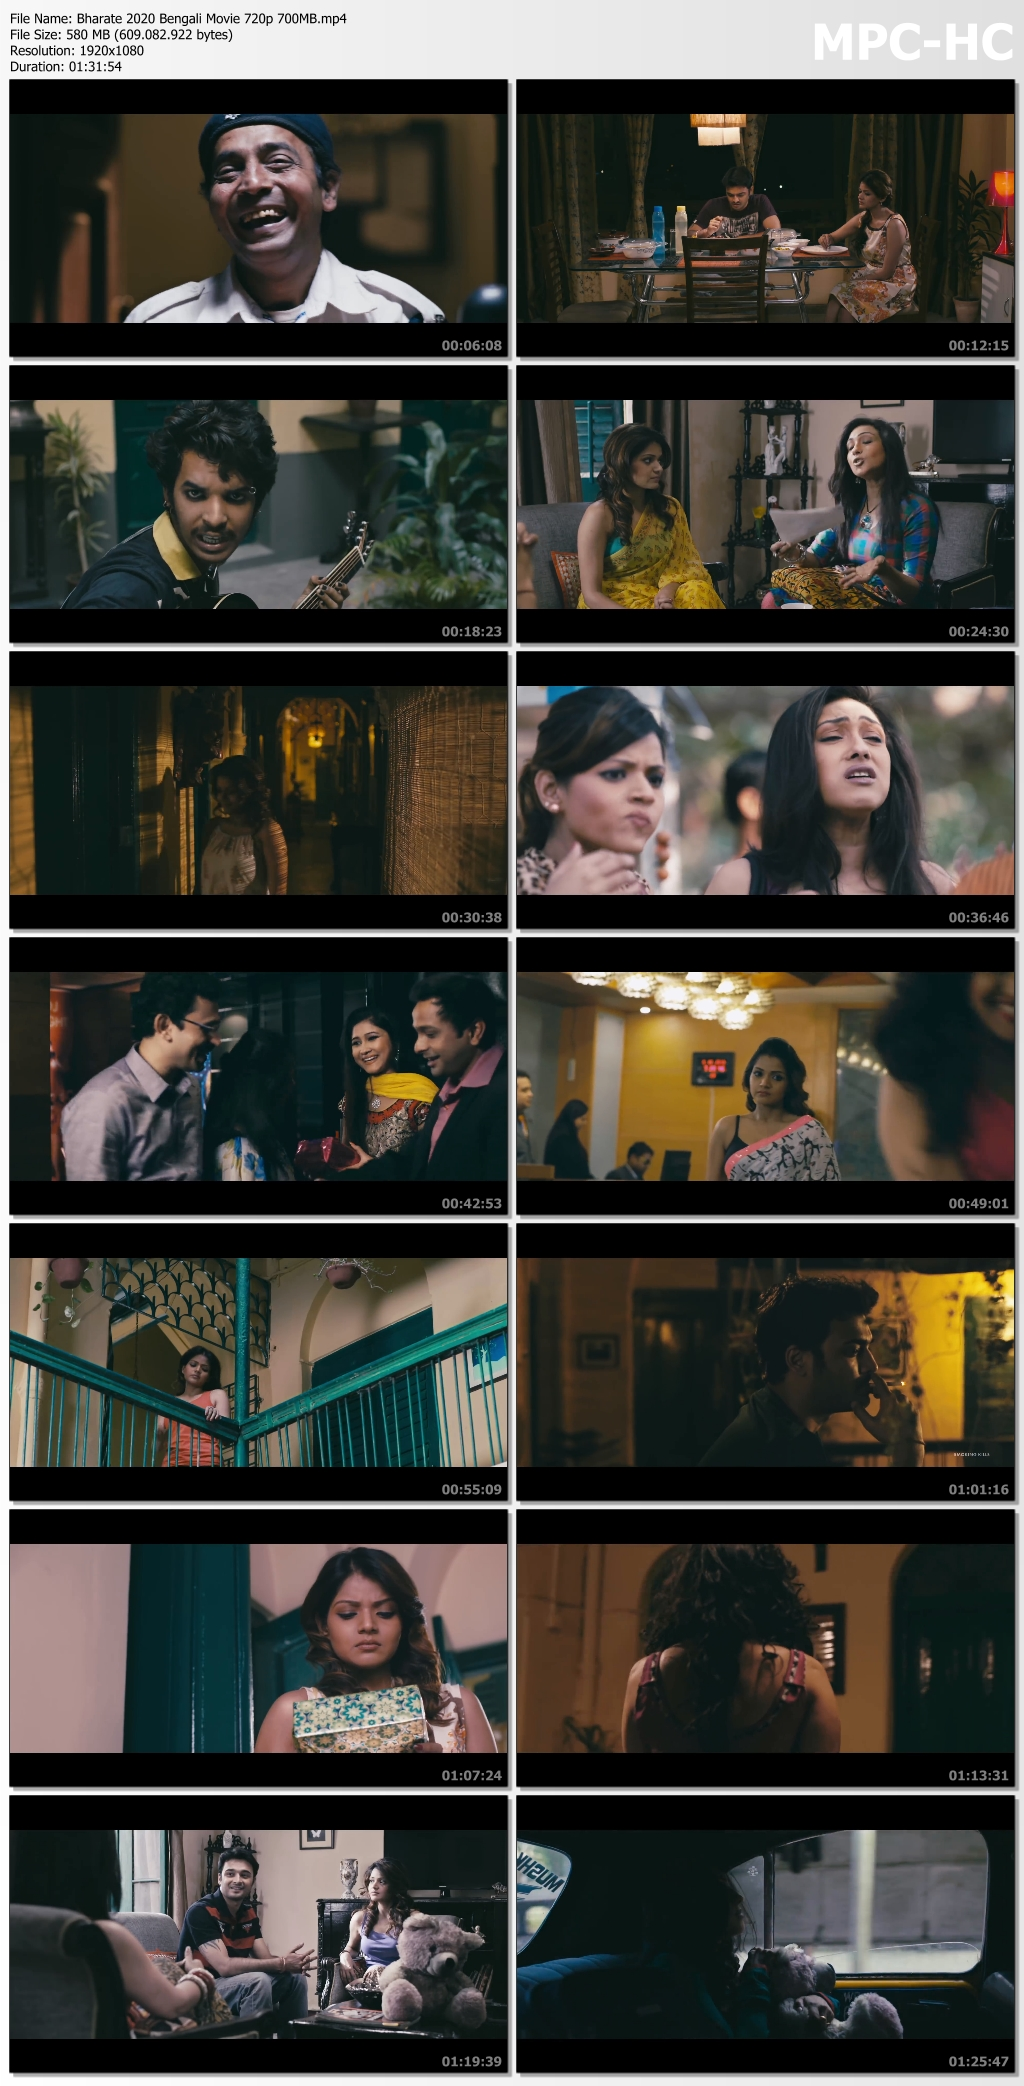 Bharate-2020-Bengali-Movie-720p-700-MB-mp4-thumbs